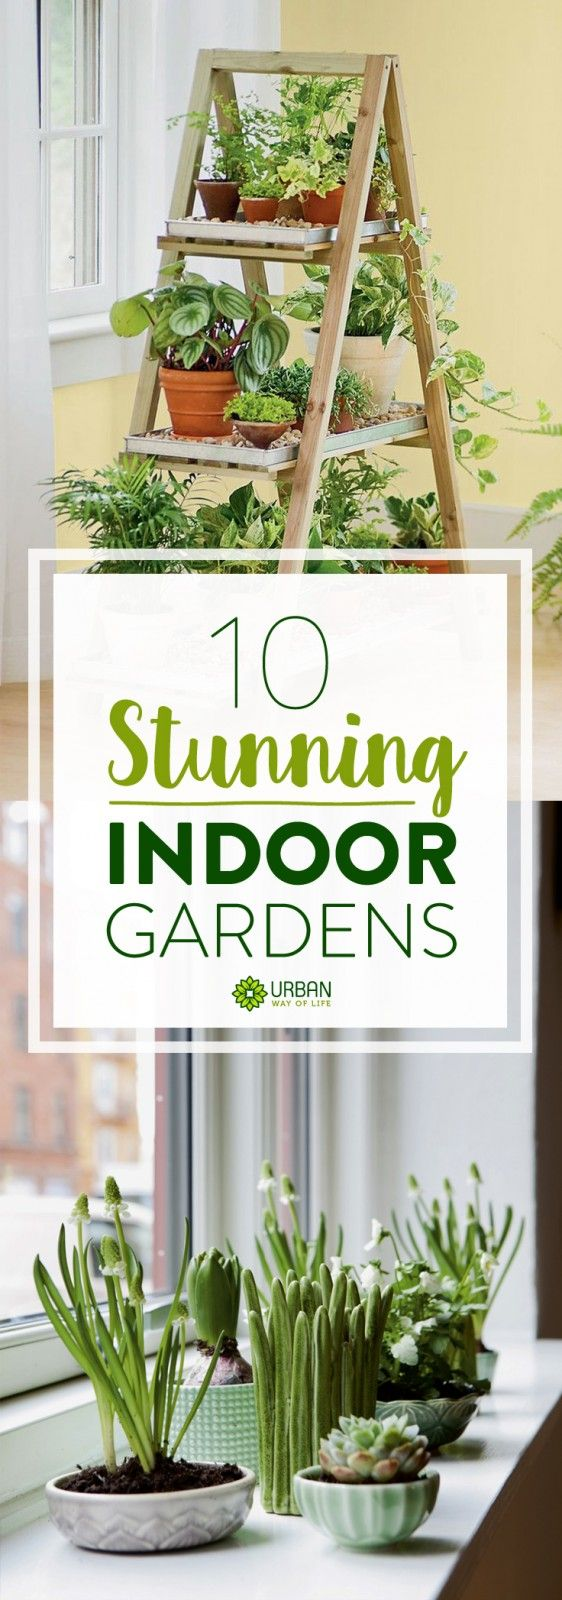 Indoor Gardening Ideas Part - 49: Indoor Gardening Ideas | DIY Inspiration For Your Apartment. By Urban Way  Of Life @